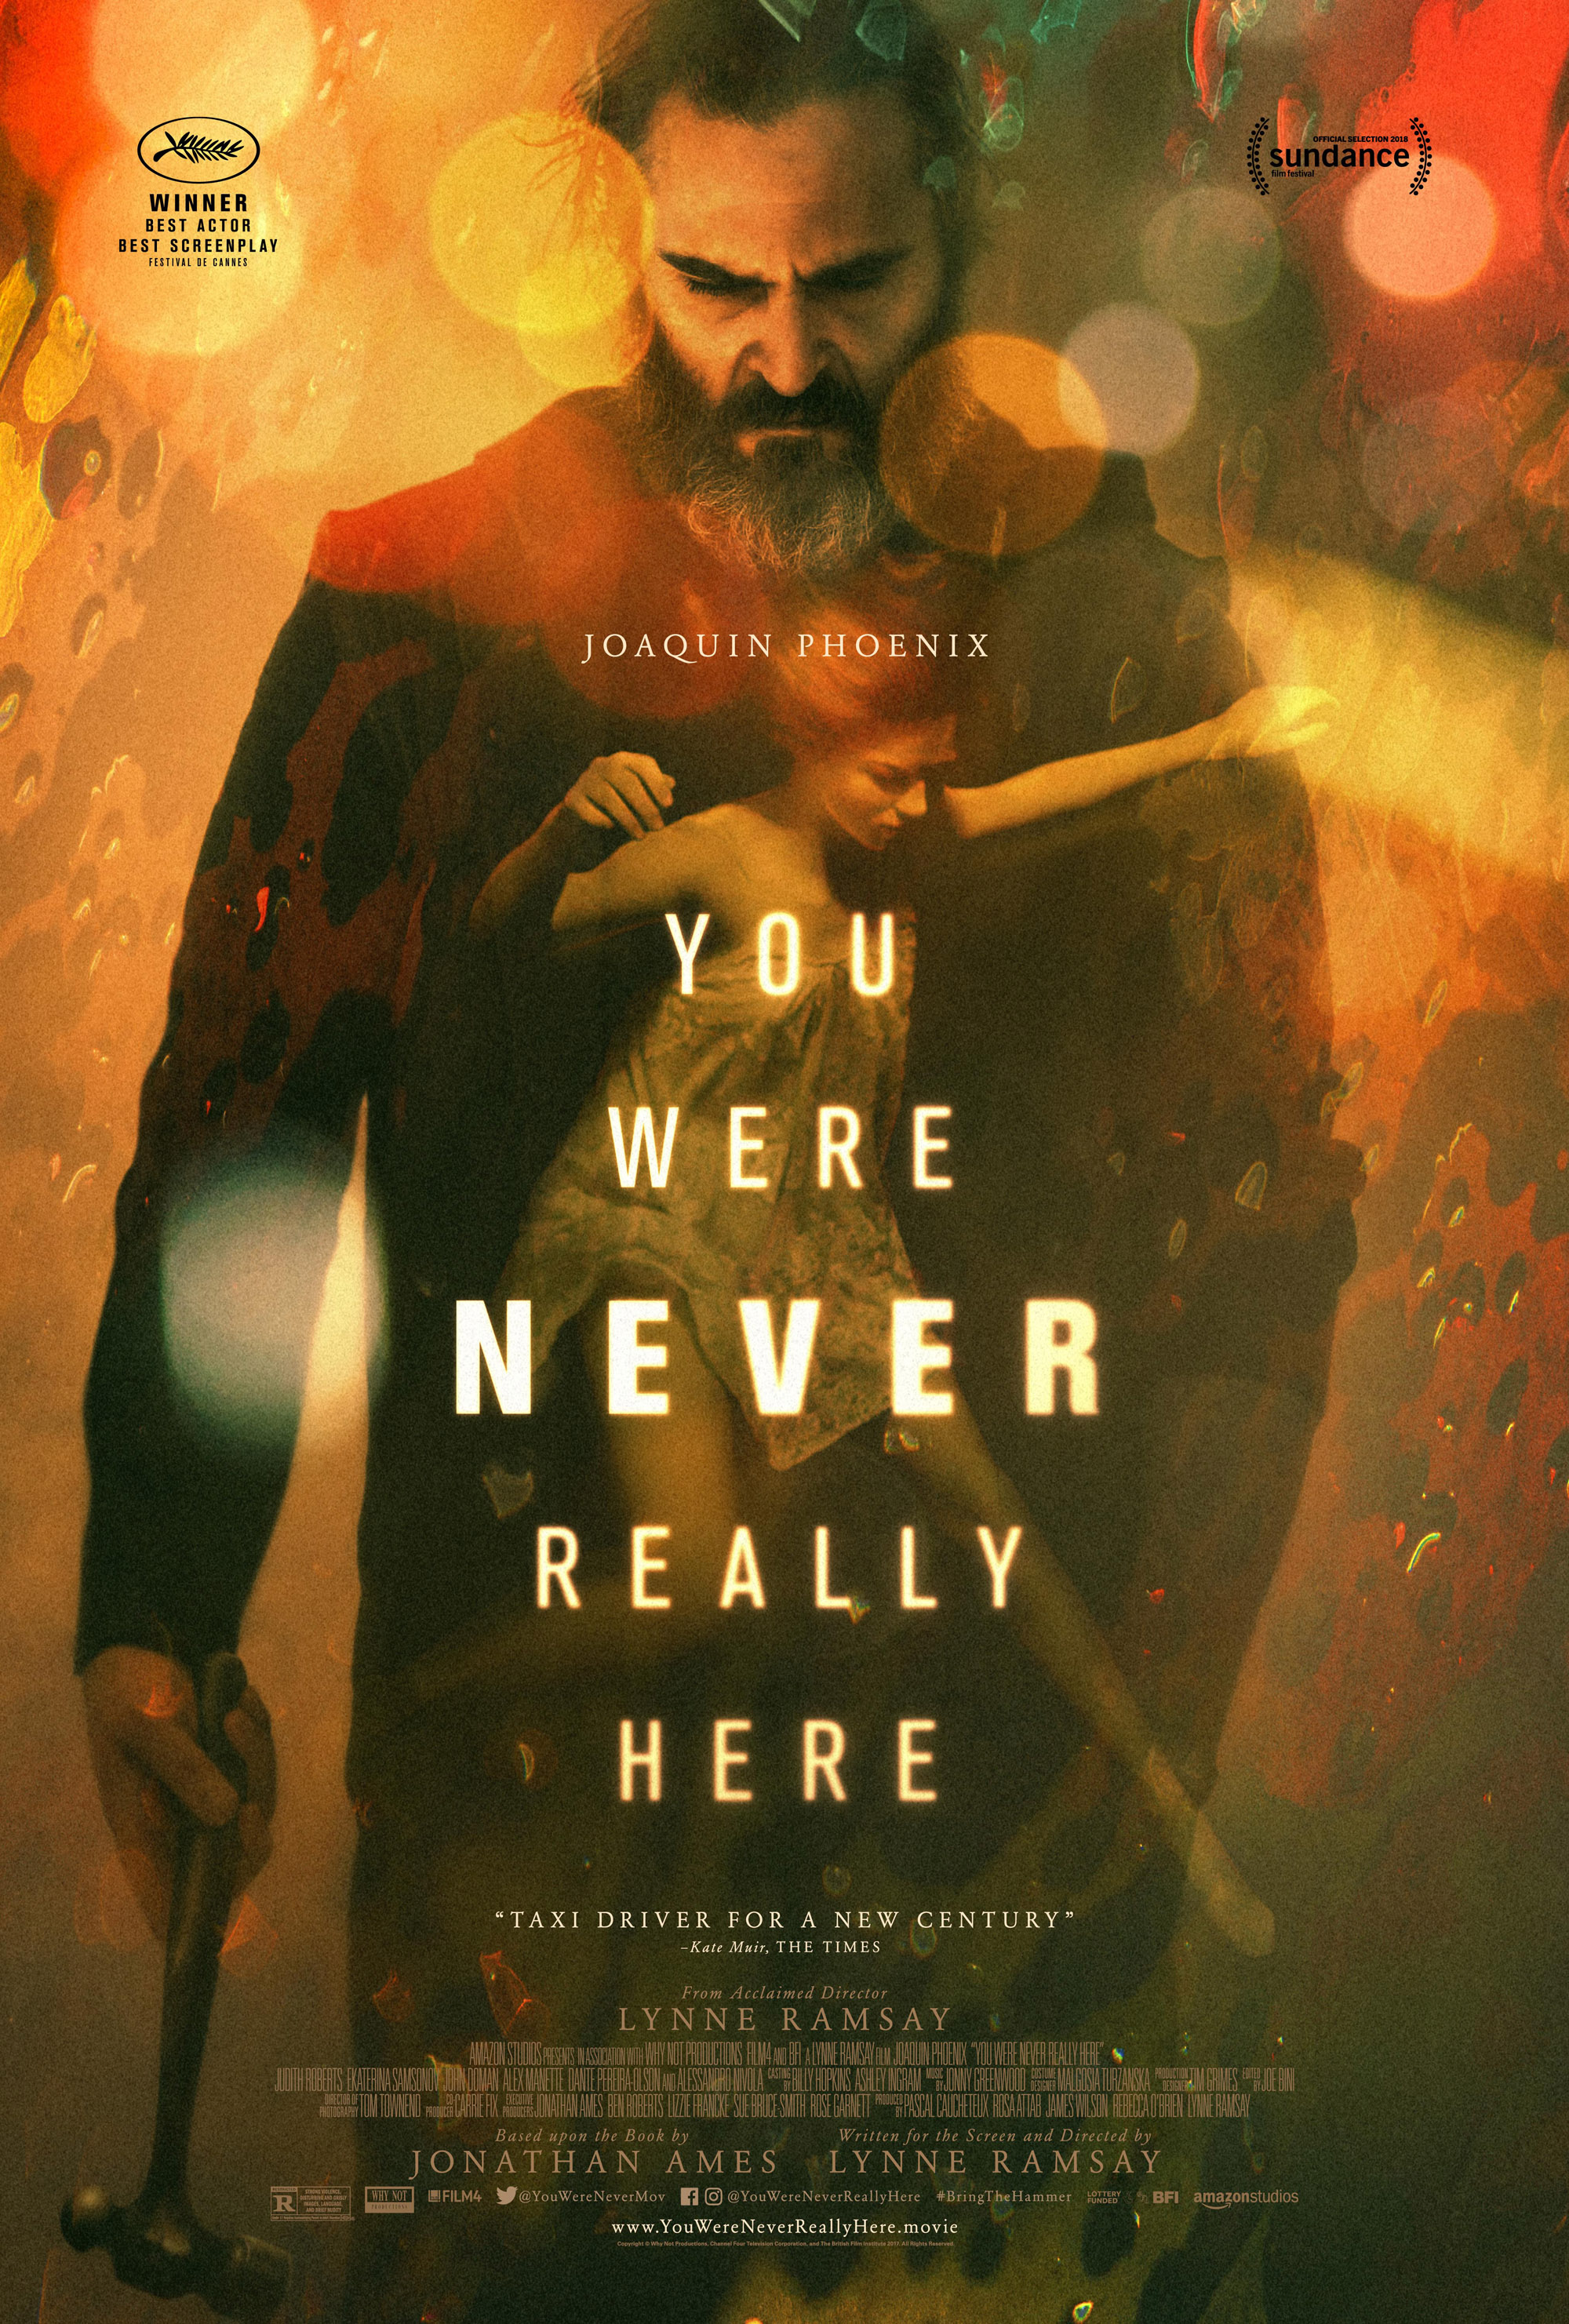 You Were Never Really Here (2017) - Directed by: Lynne RamsayStarring: Joaquin Phoenix, Judith Roberts, Ekatarina SamsonovRunning Time: 1h 29mRated: RTMM Score: 5 stars out of 5STRENGTHS: Acting, DirectionWEAKNESSES: None